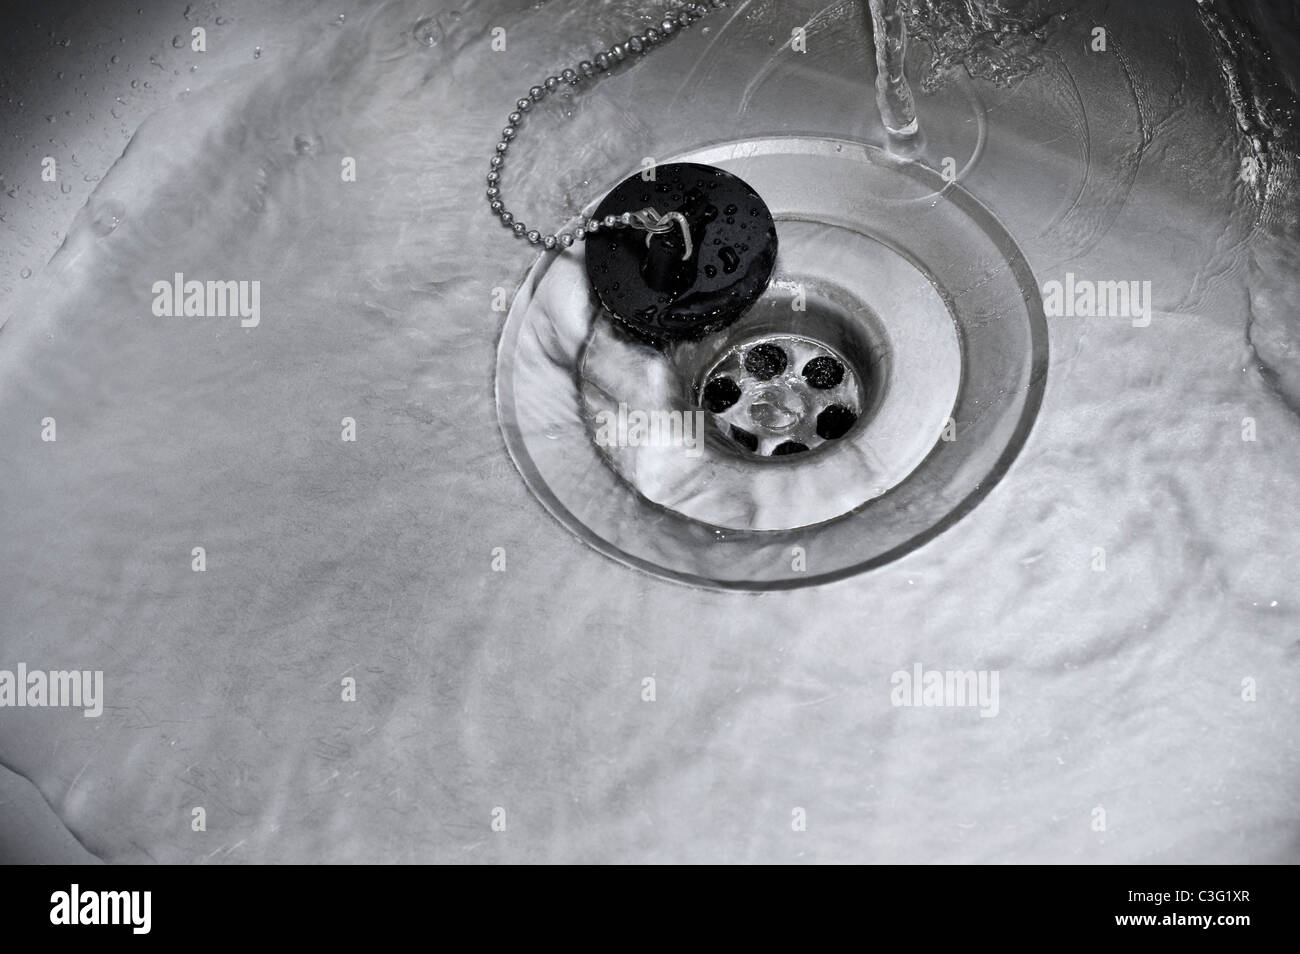 Water Running Down the Plughole in Kitchen Sink - Stock Image